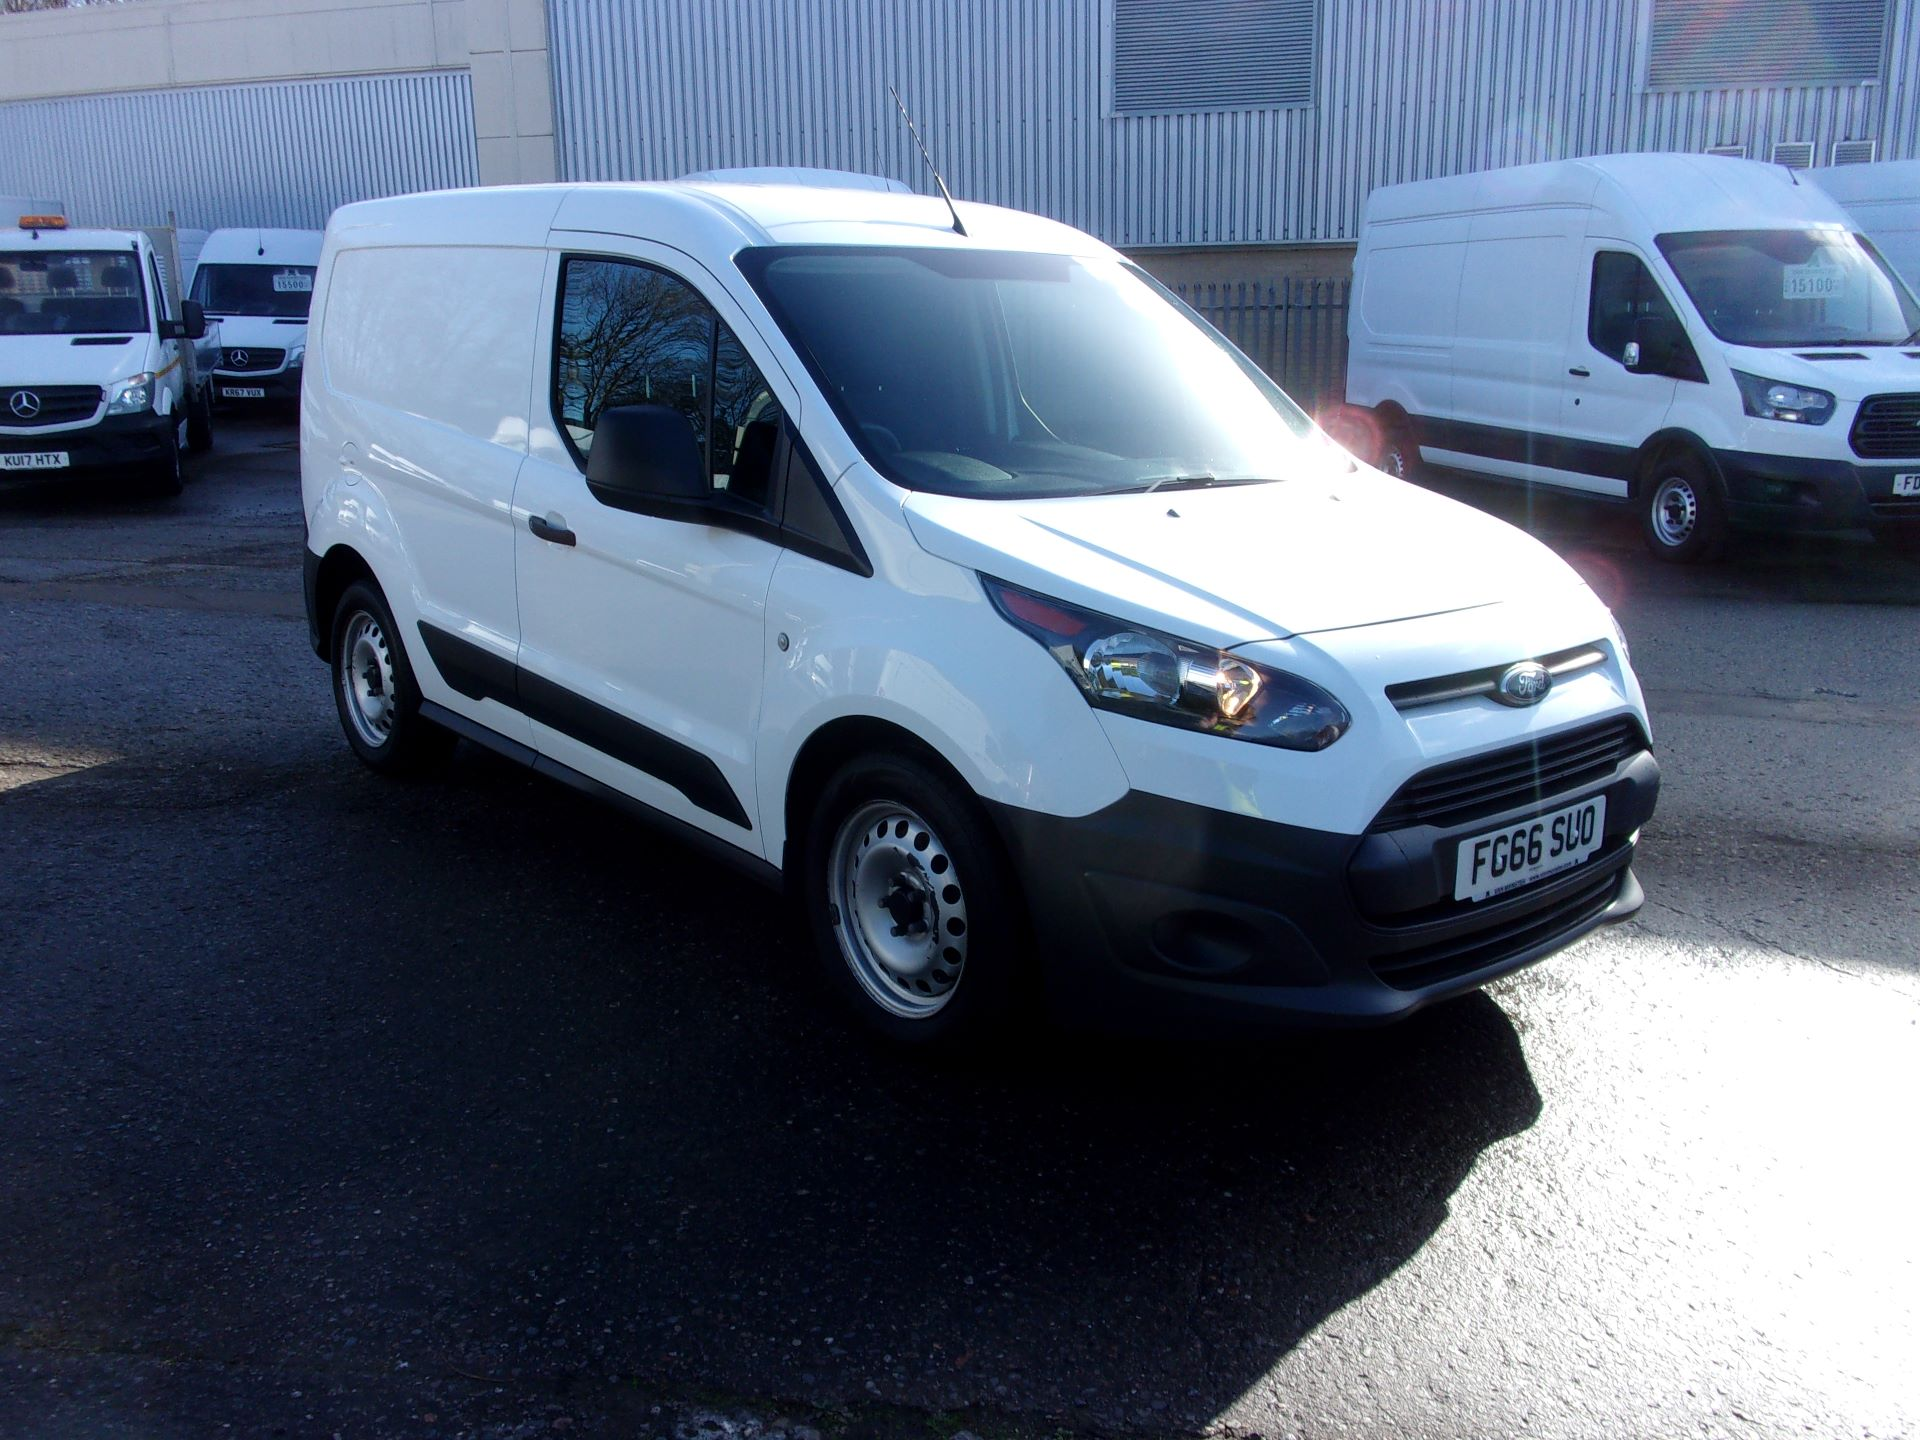 2016 Ford Transit Connect 220 L1 DIESEL 1.5 TDCI 75PS VAN (FG66SUO)